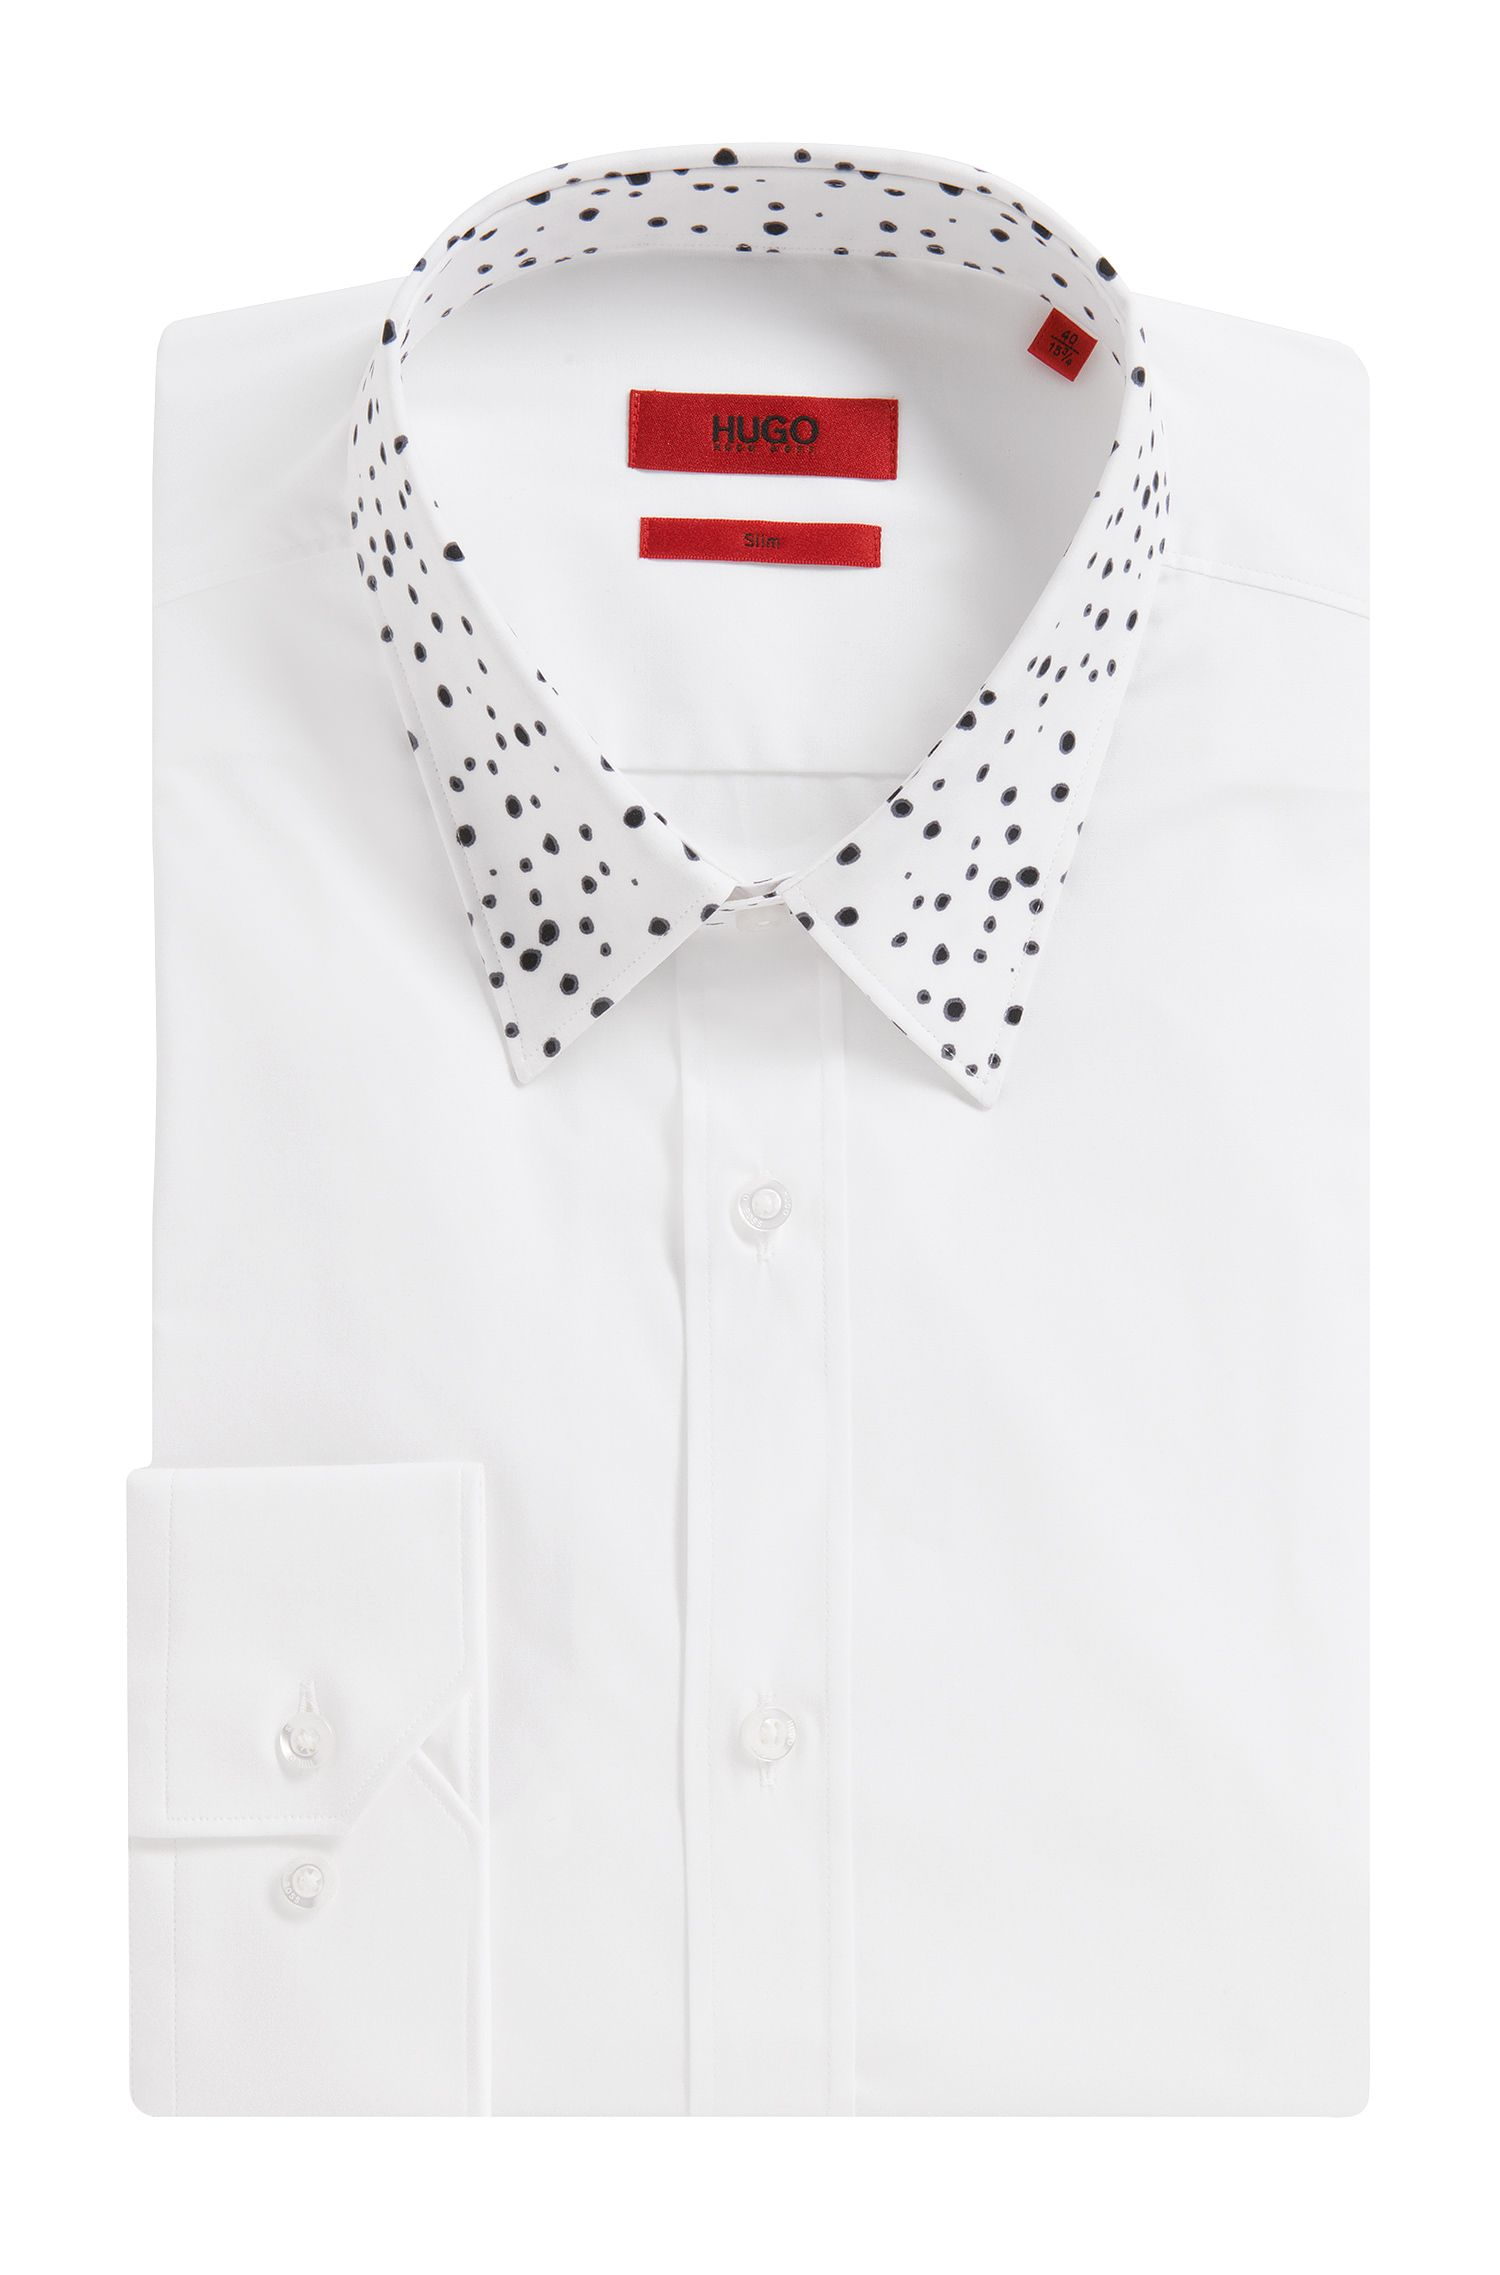 'Elisha' | Extra Slim Fit, Stretch Cotton Button Down Shirt